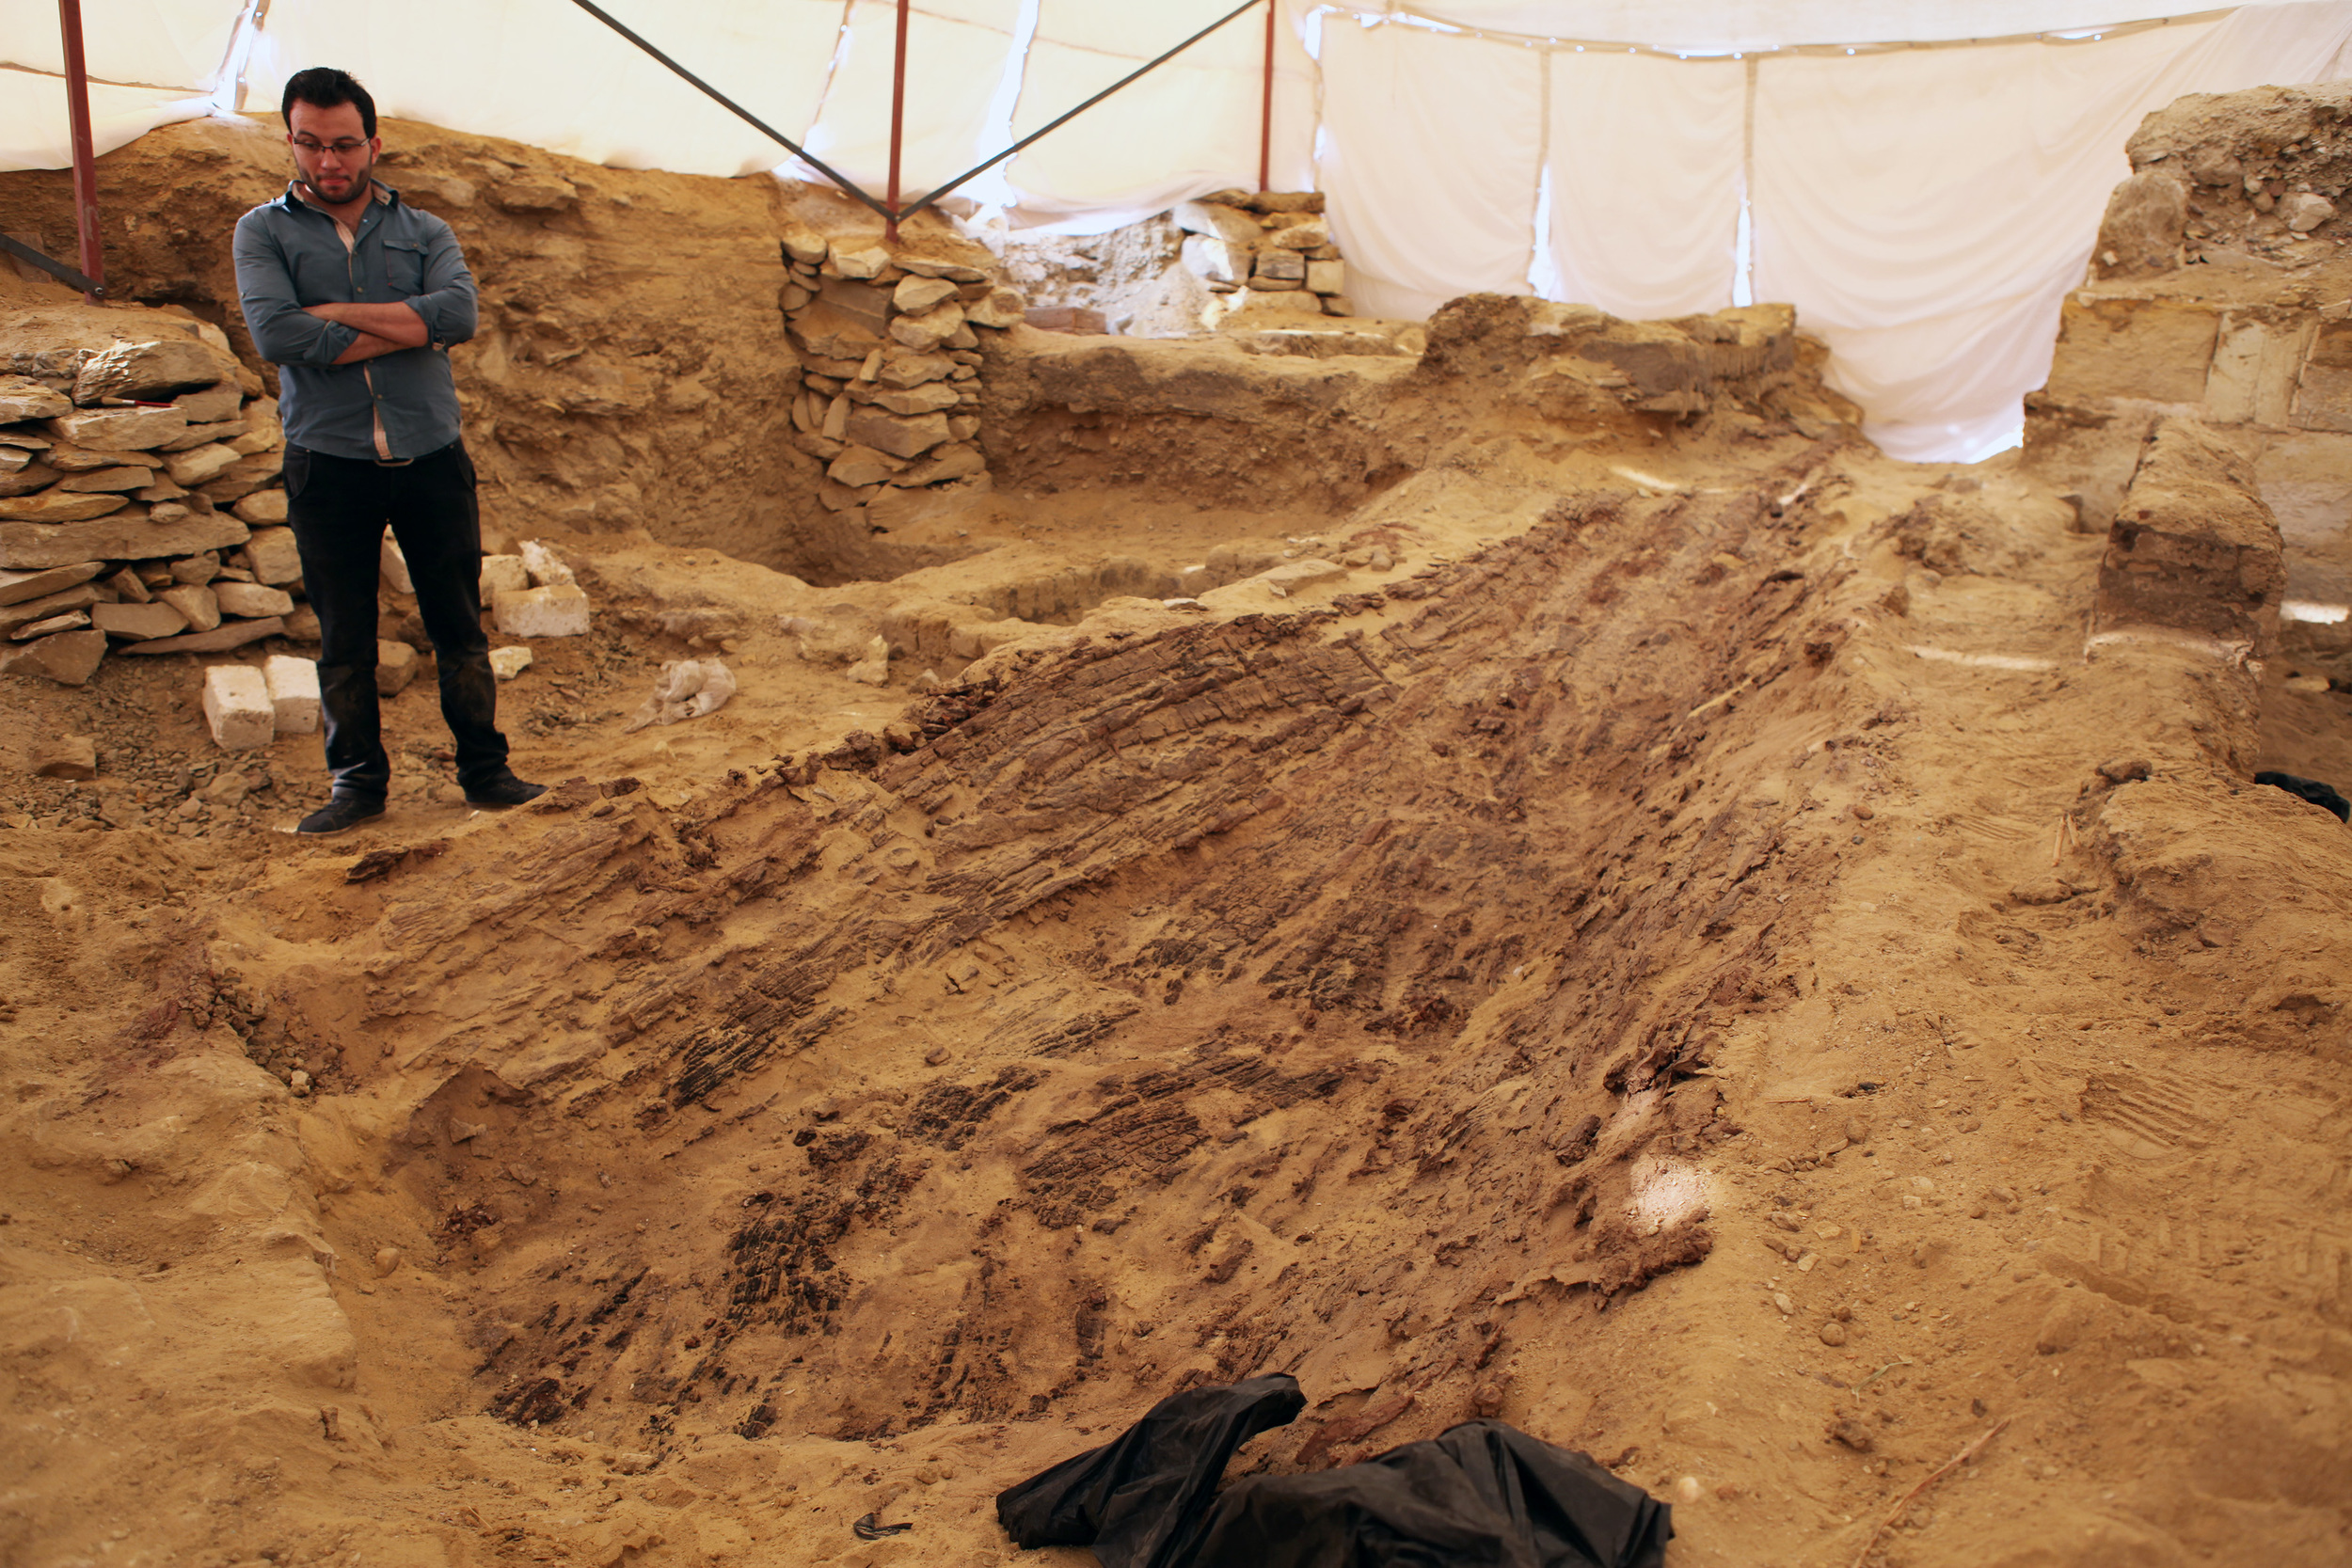 This photo was taken on November 8, 2015 during the excavation and restoration of the Old Kingdom boat. (c) Czech Institute of Egyptology / V. Dulikova.